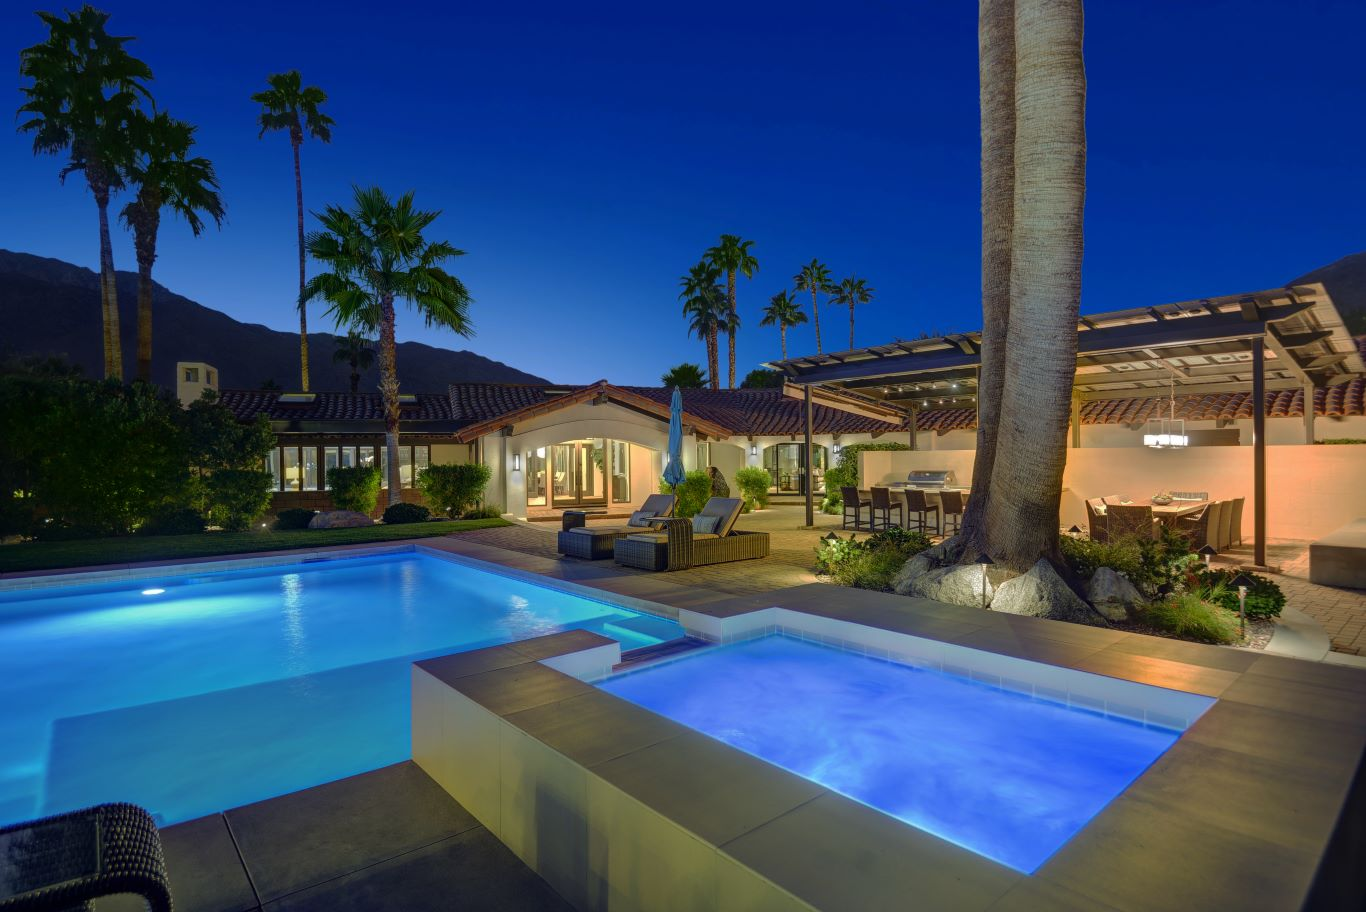 Pool and Spa - Night View